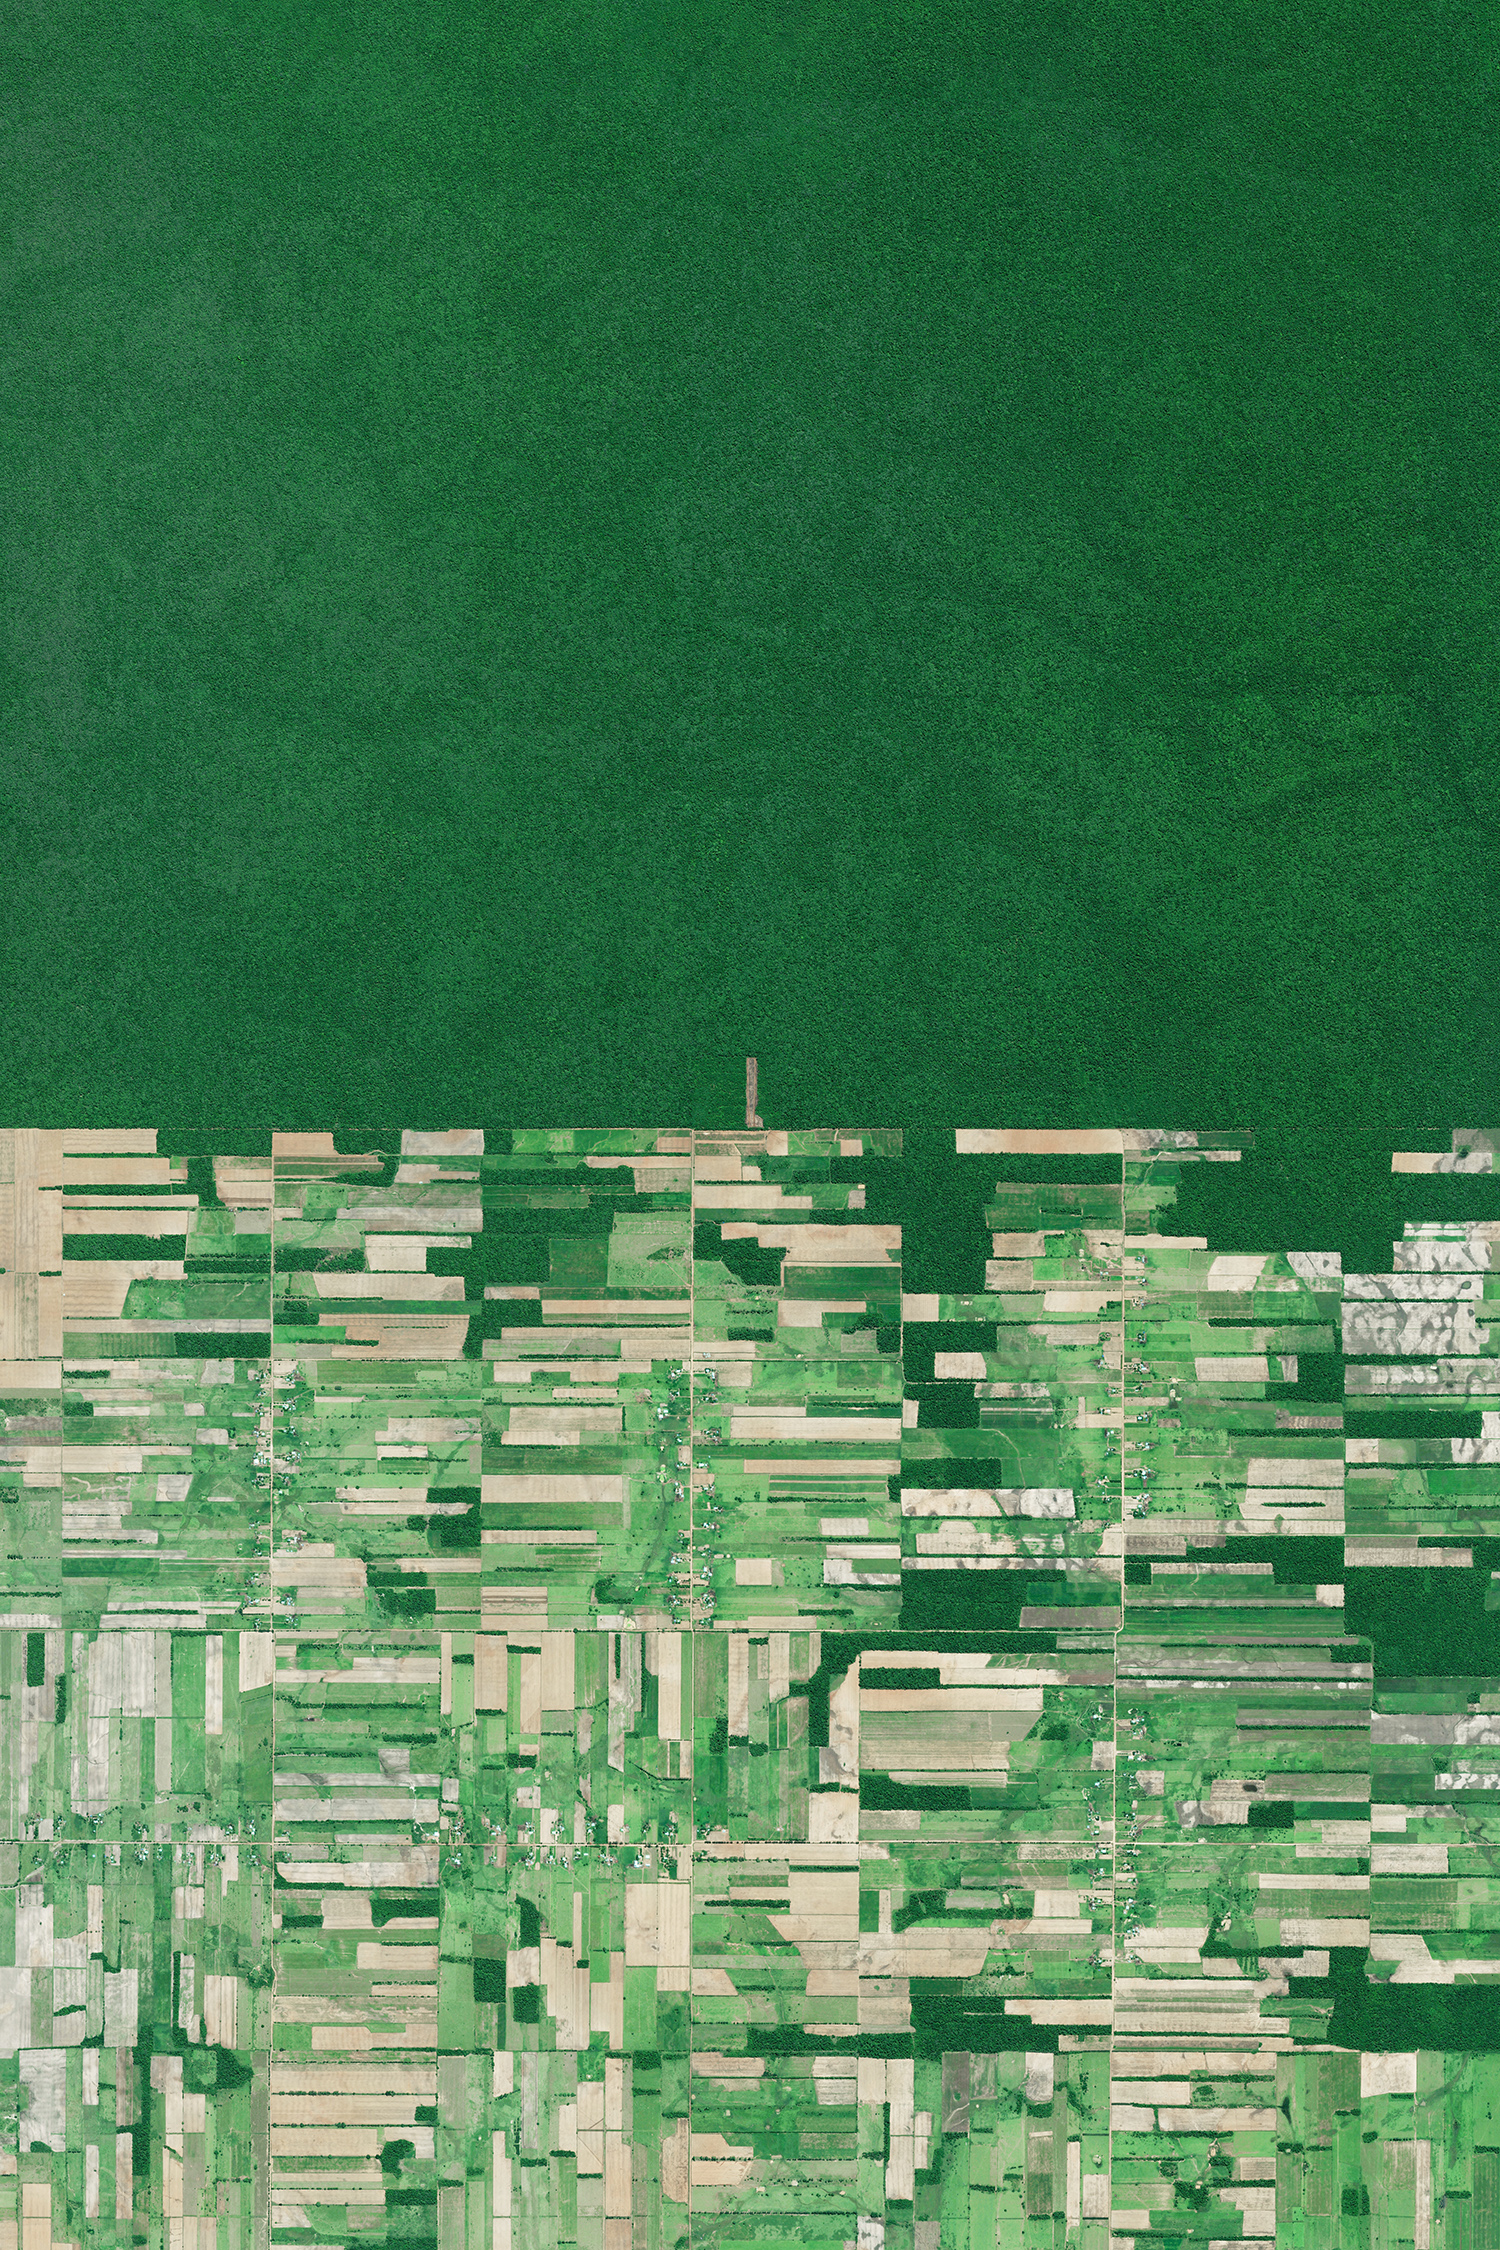 """Deforestation in Bolivia has primarily been driven by the expansion of mechanized agriculture and cattle ranching. It is seen here in Santa Cruz, immediately adjacent to untouched tracts of forest. While tree-clearing rates are now relatively stable at about 200,000 hectares (494,000 acres) a year, it is estimated that Bolivia lost 1,820,000 hectares (4.5 million acres) of forests from 2000 to 2010. Since today is Arbor Day, we hope this Overview will inspire you to plant a tree and help preserve the natural beauty of our one and only home.  17°23'15.7""""S, 60°33'43.6""""W  Source imagery: DigitalGlobe"""